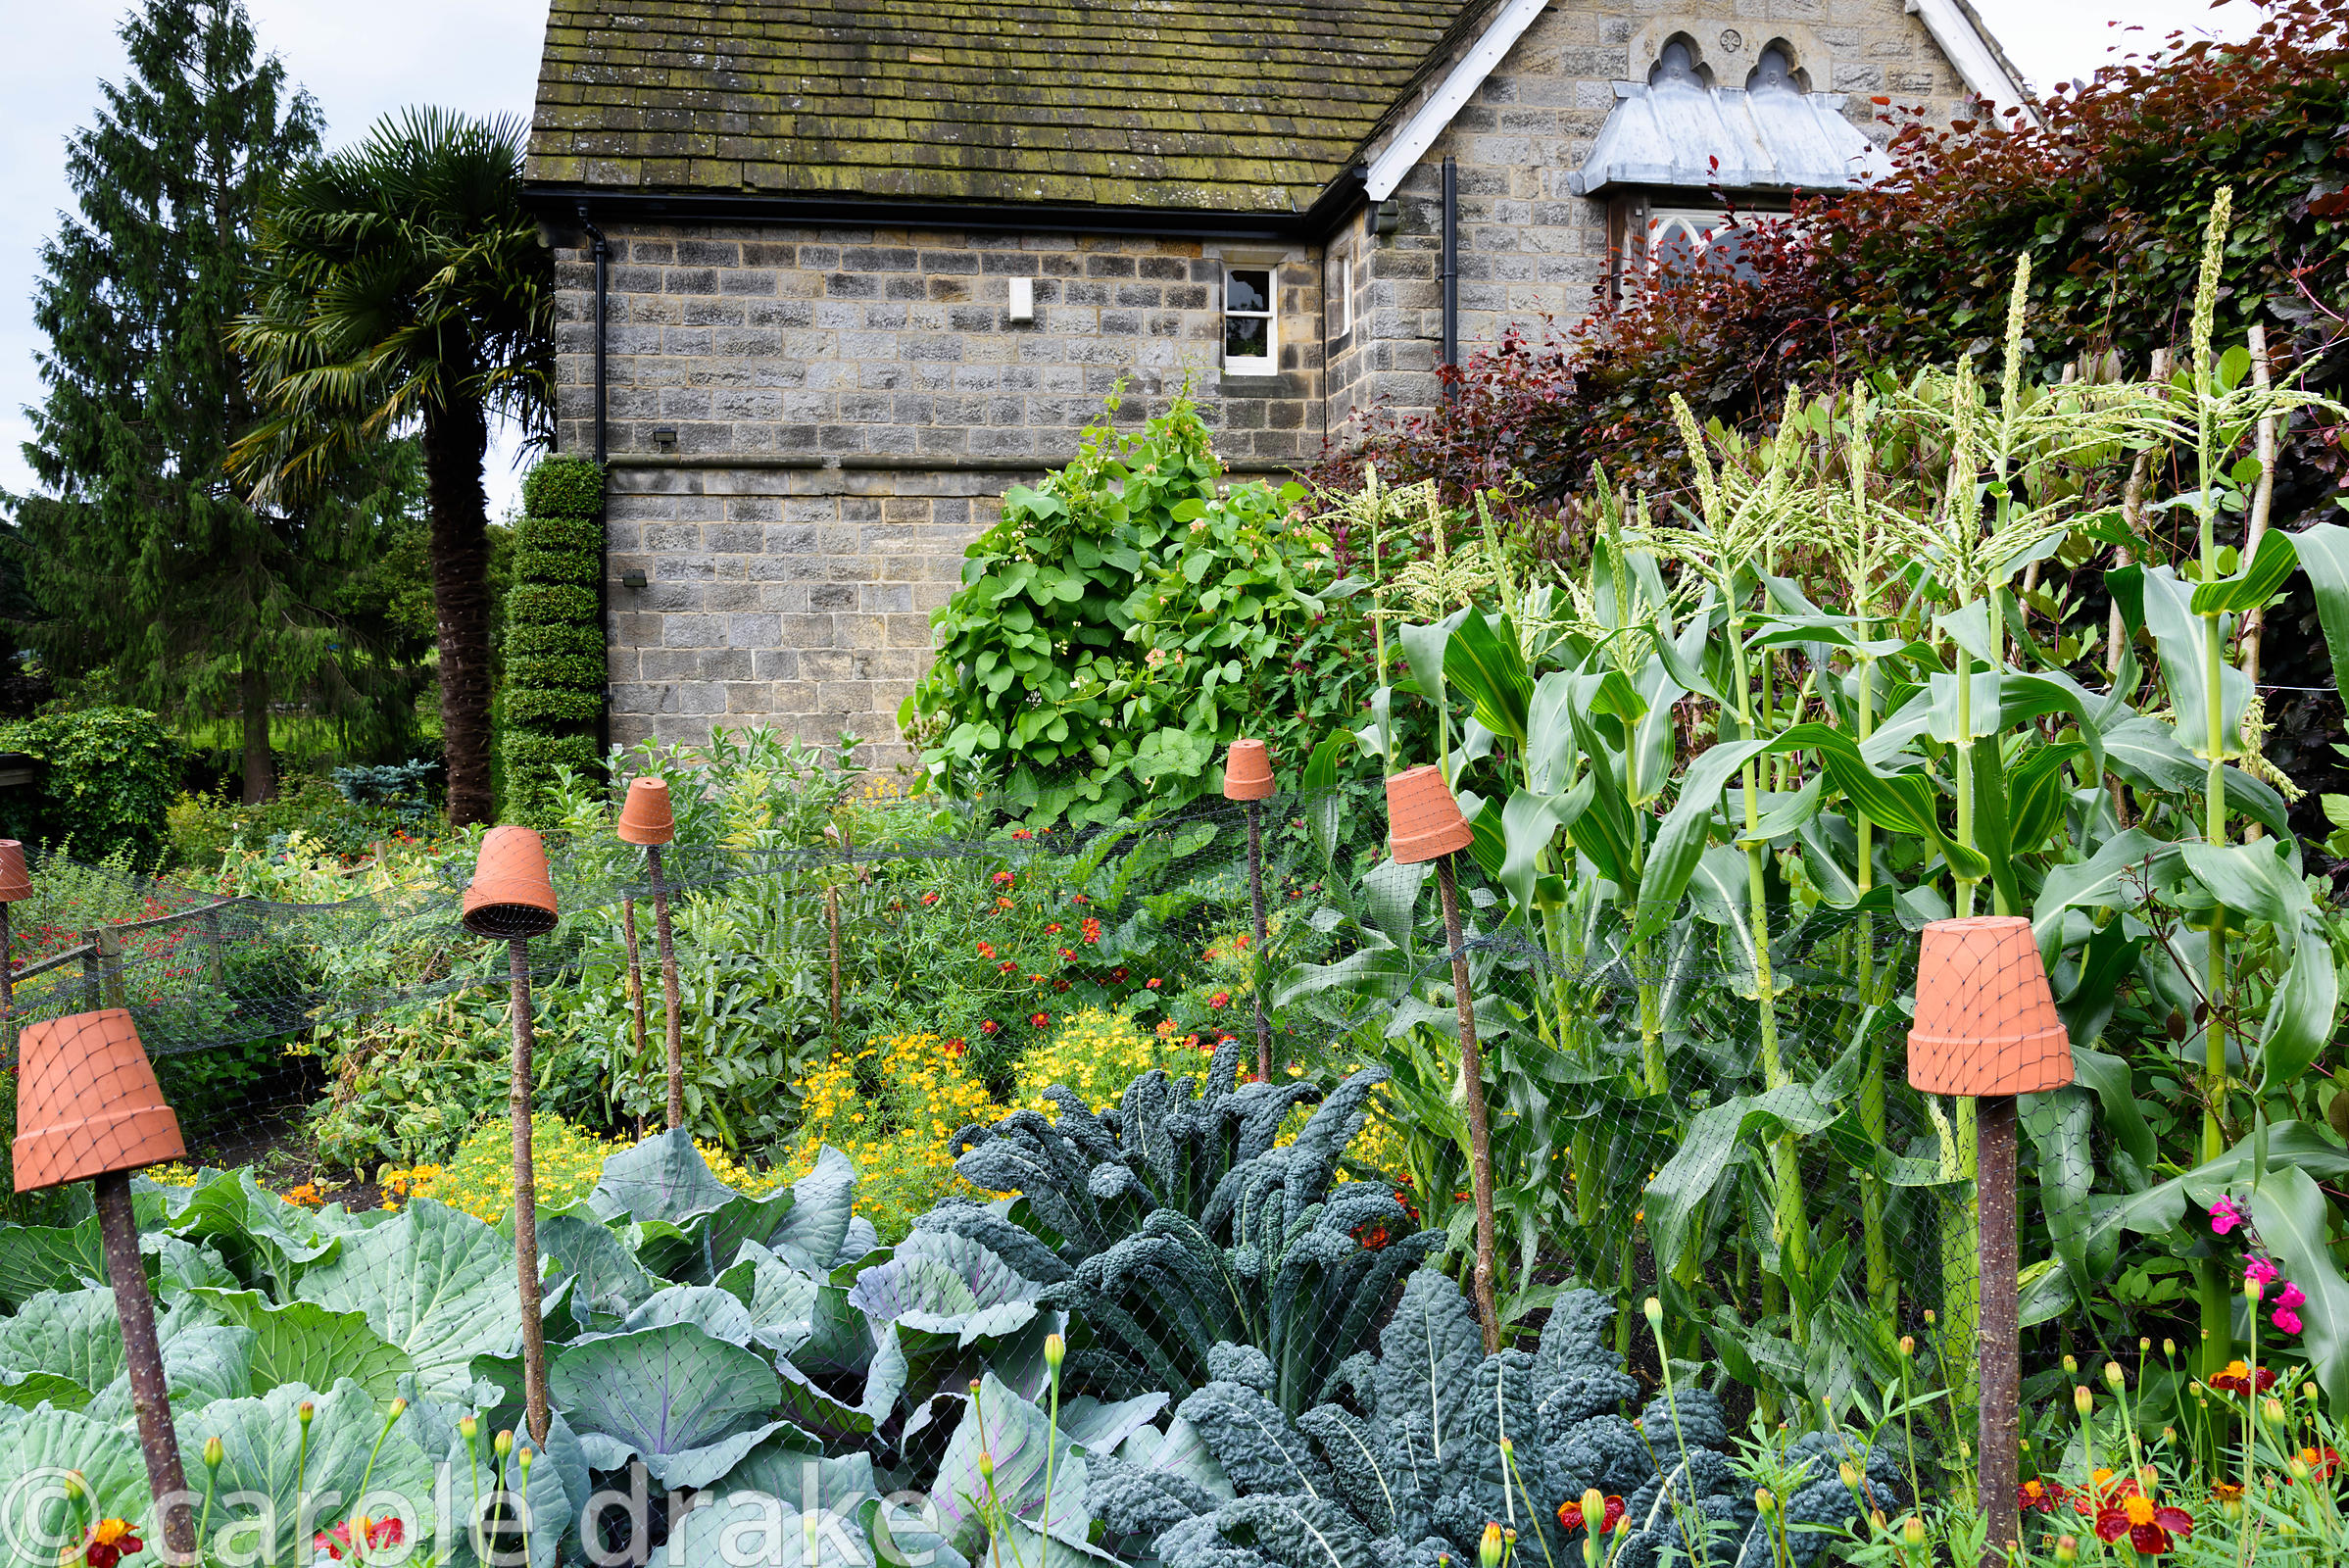 Kitchen garden with terracotta pot topped supports draped with protective netting over kale and cabbages, marigolds and tall ...